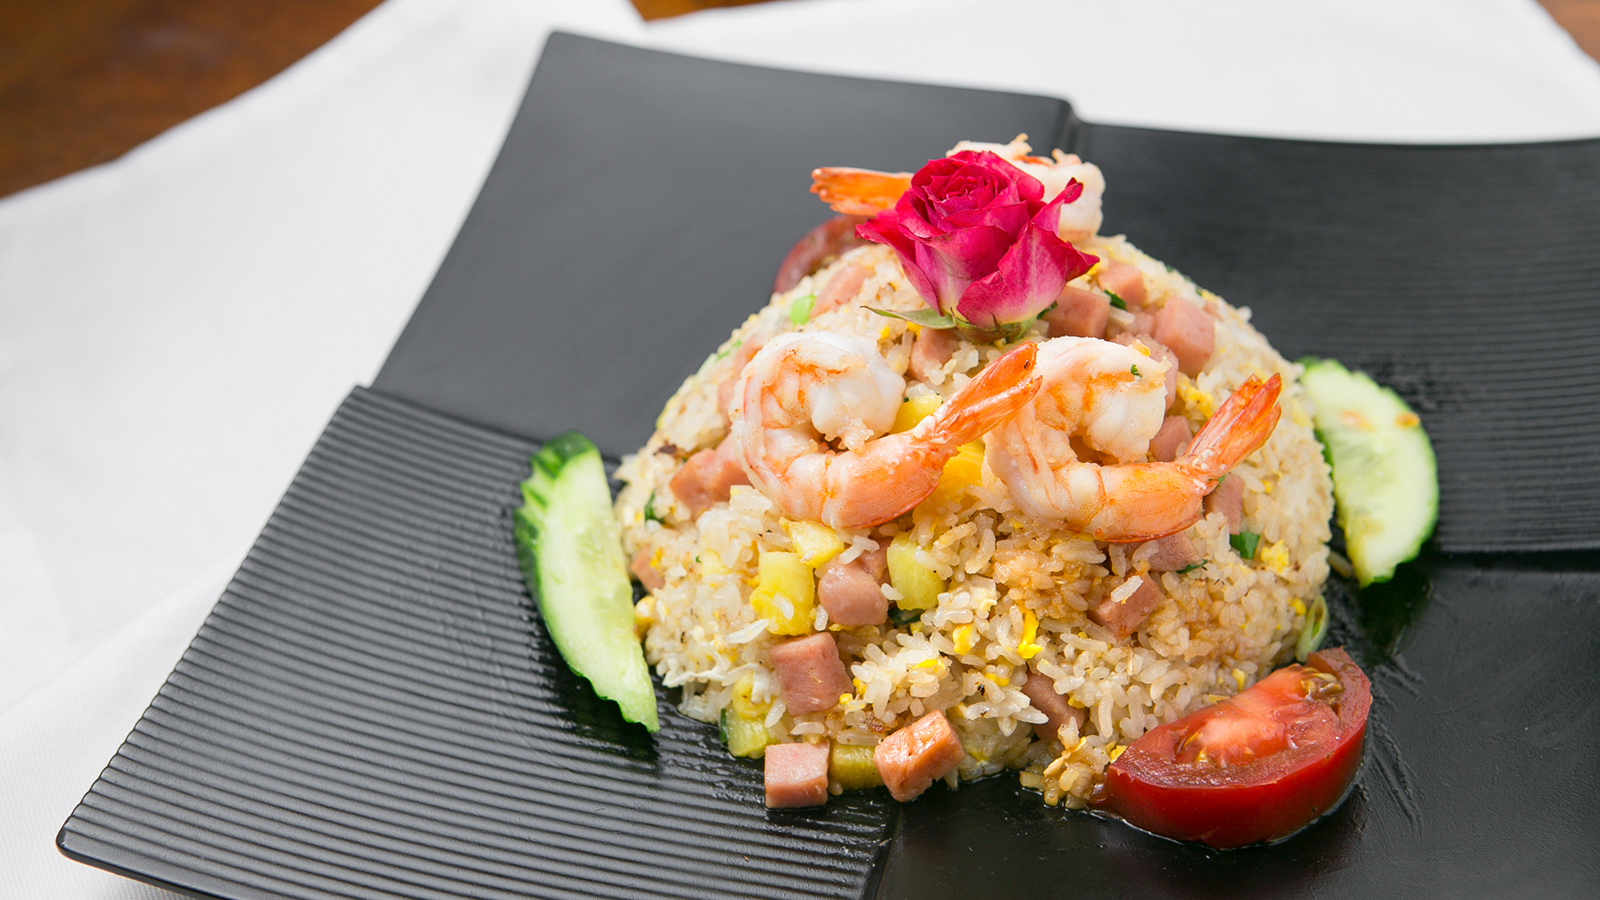 Shrimp plated over fried rice with vegetables topped with a small rose